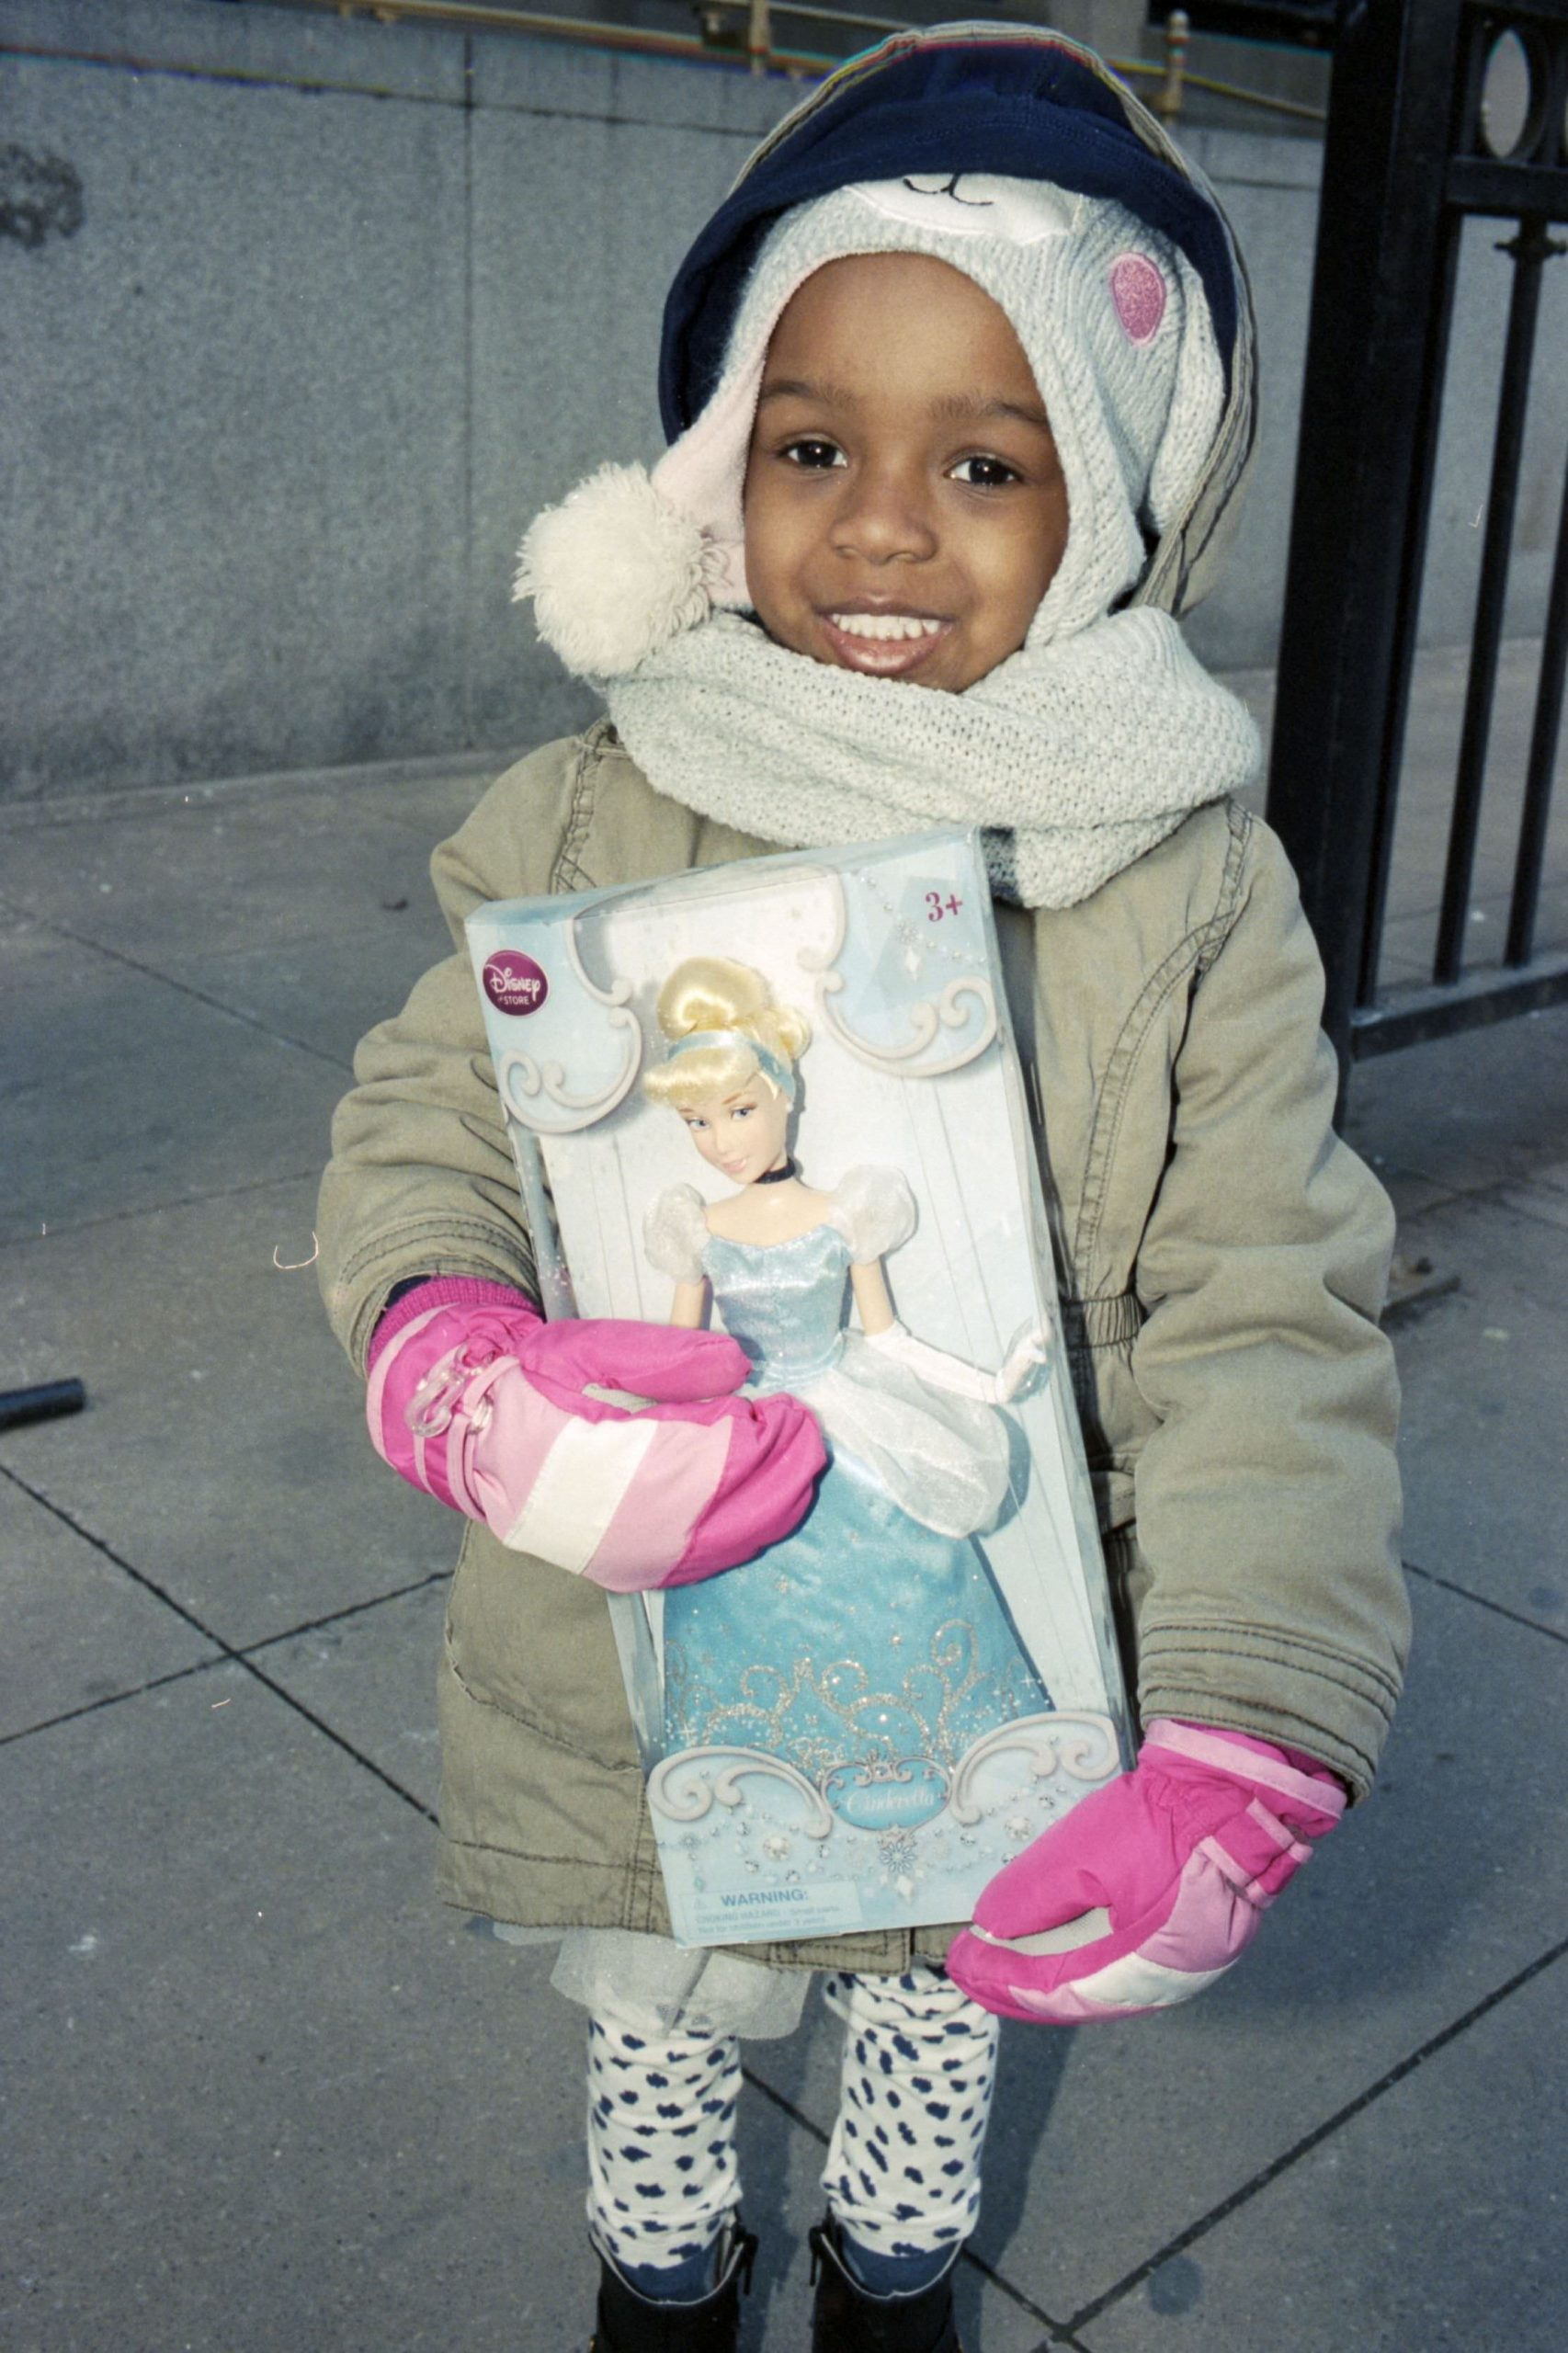 African American girl with caucasian Cinderella doll pink gloves Chicago street photograph ERIC KIM